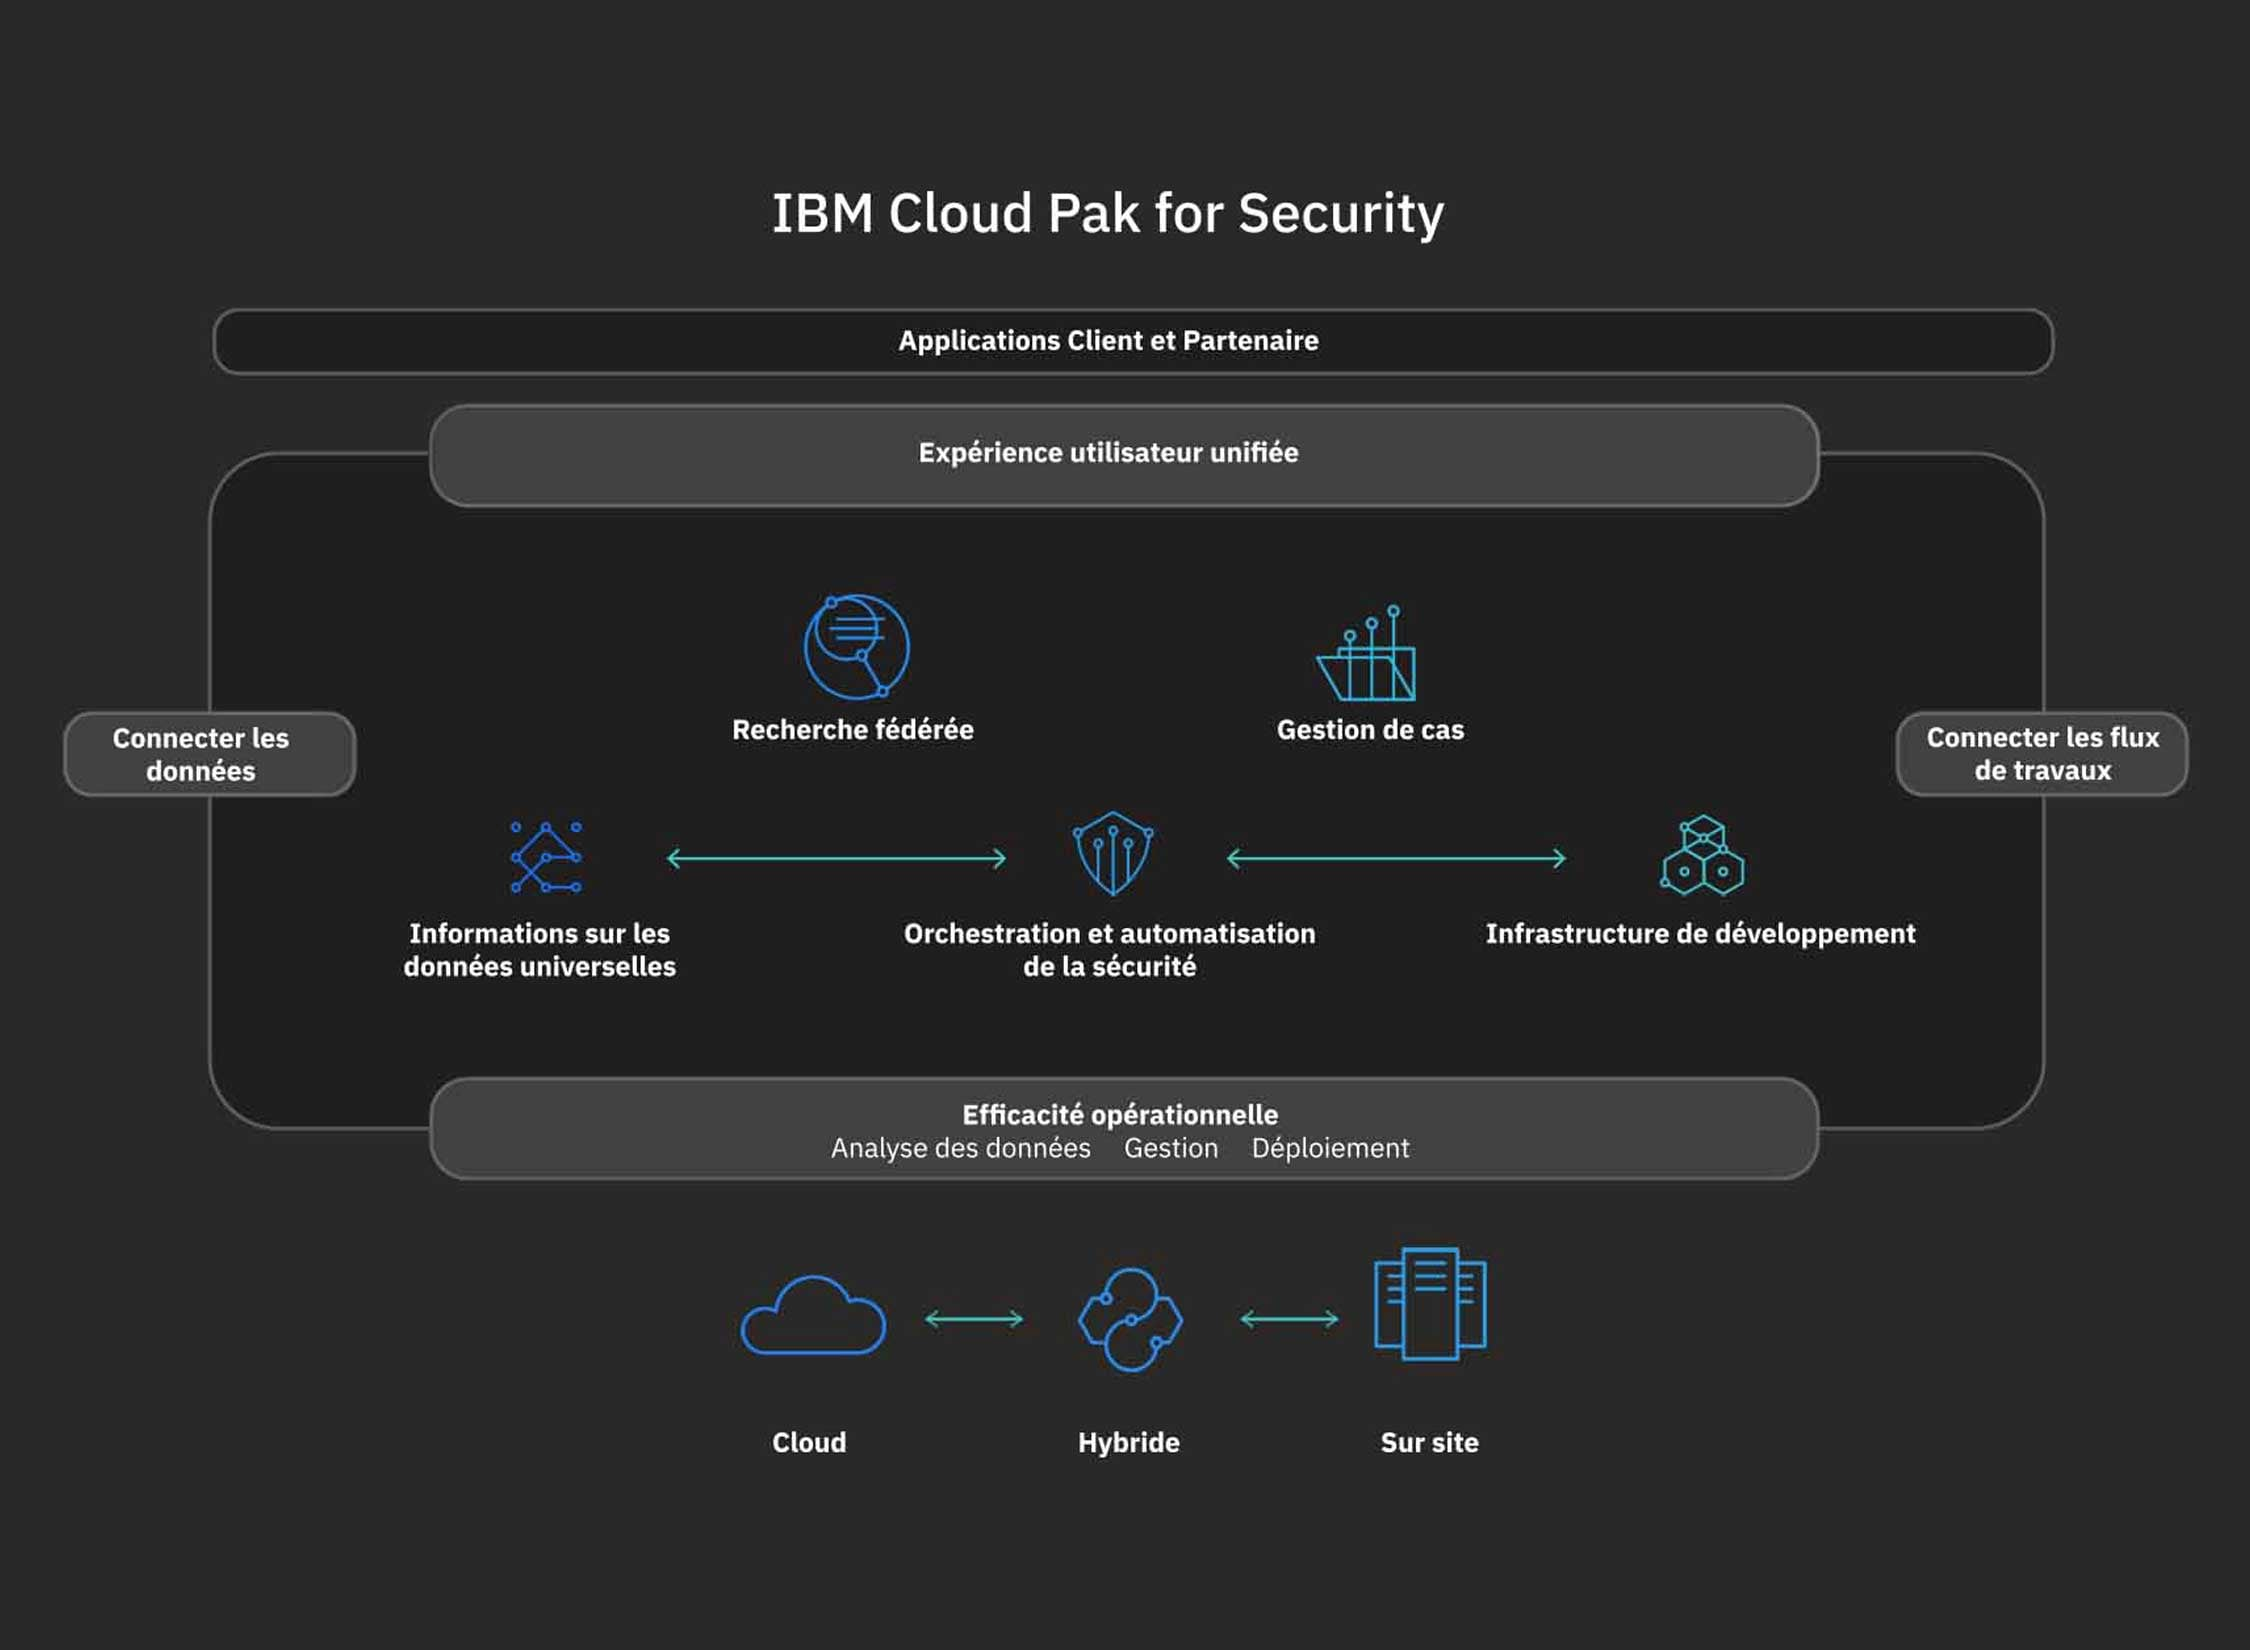 Description du fonctionnement d'IBM Cloud Pak for Security.